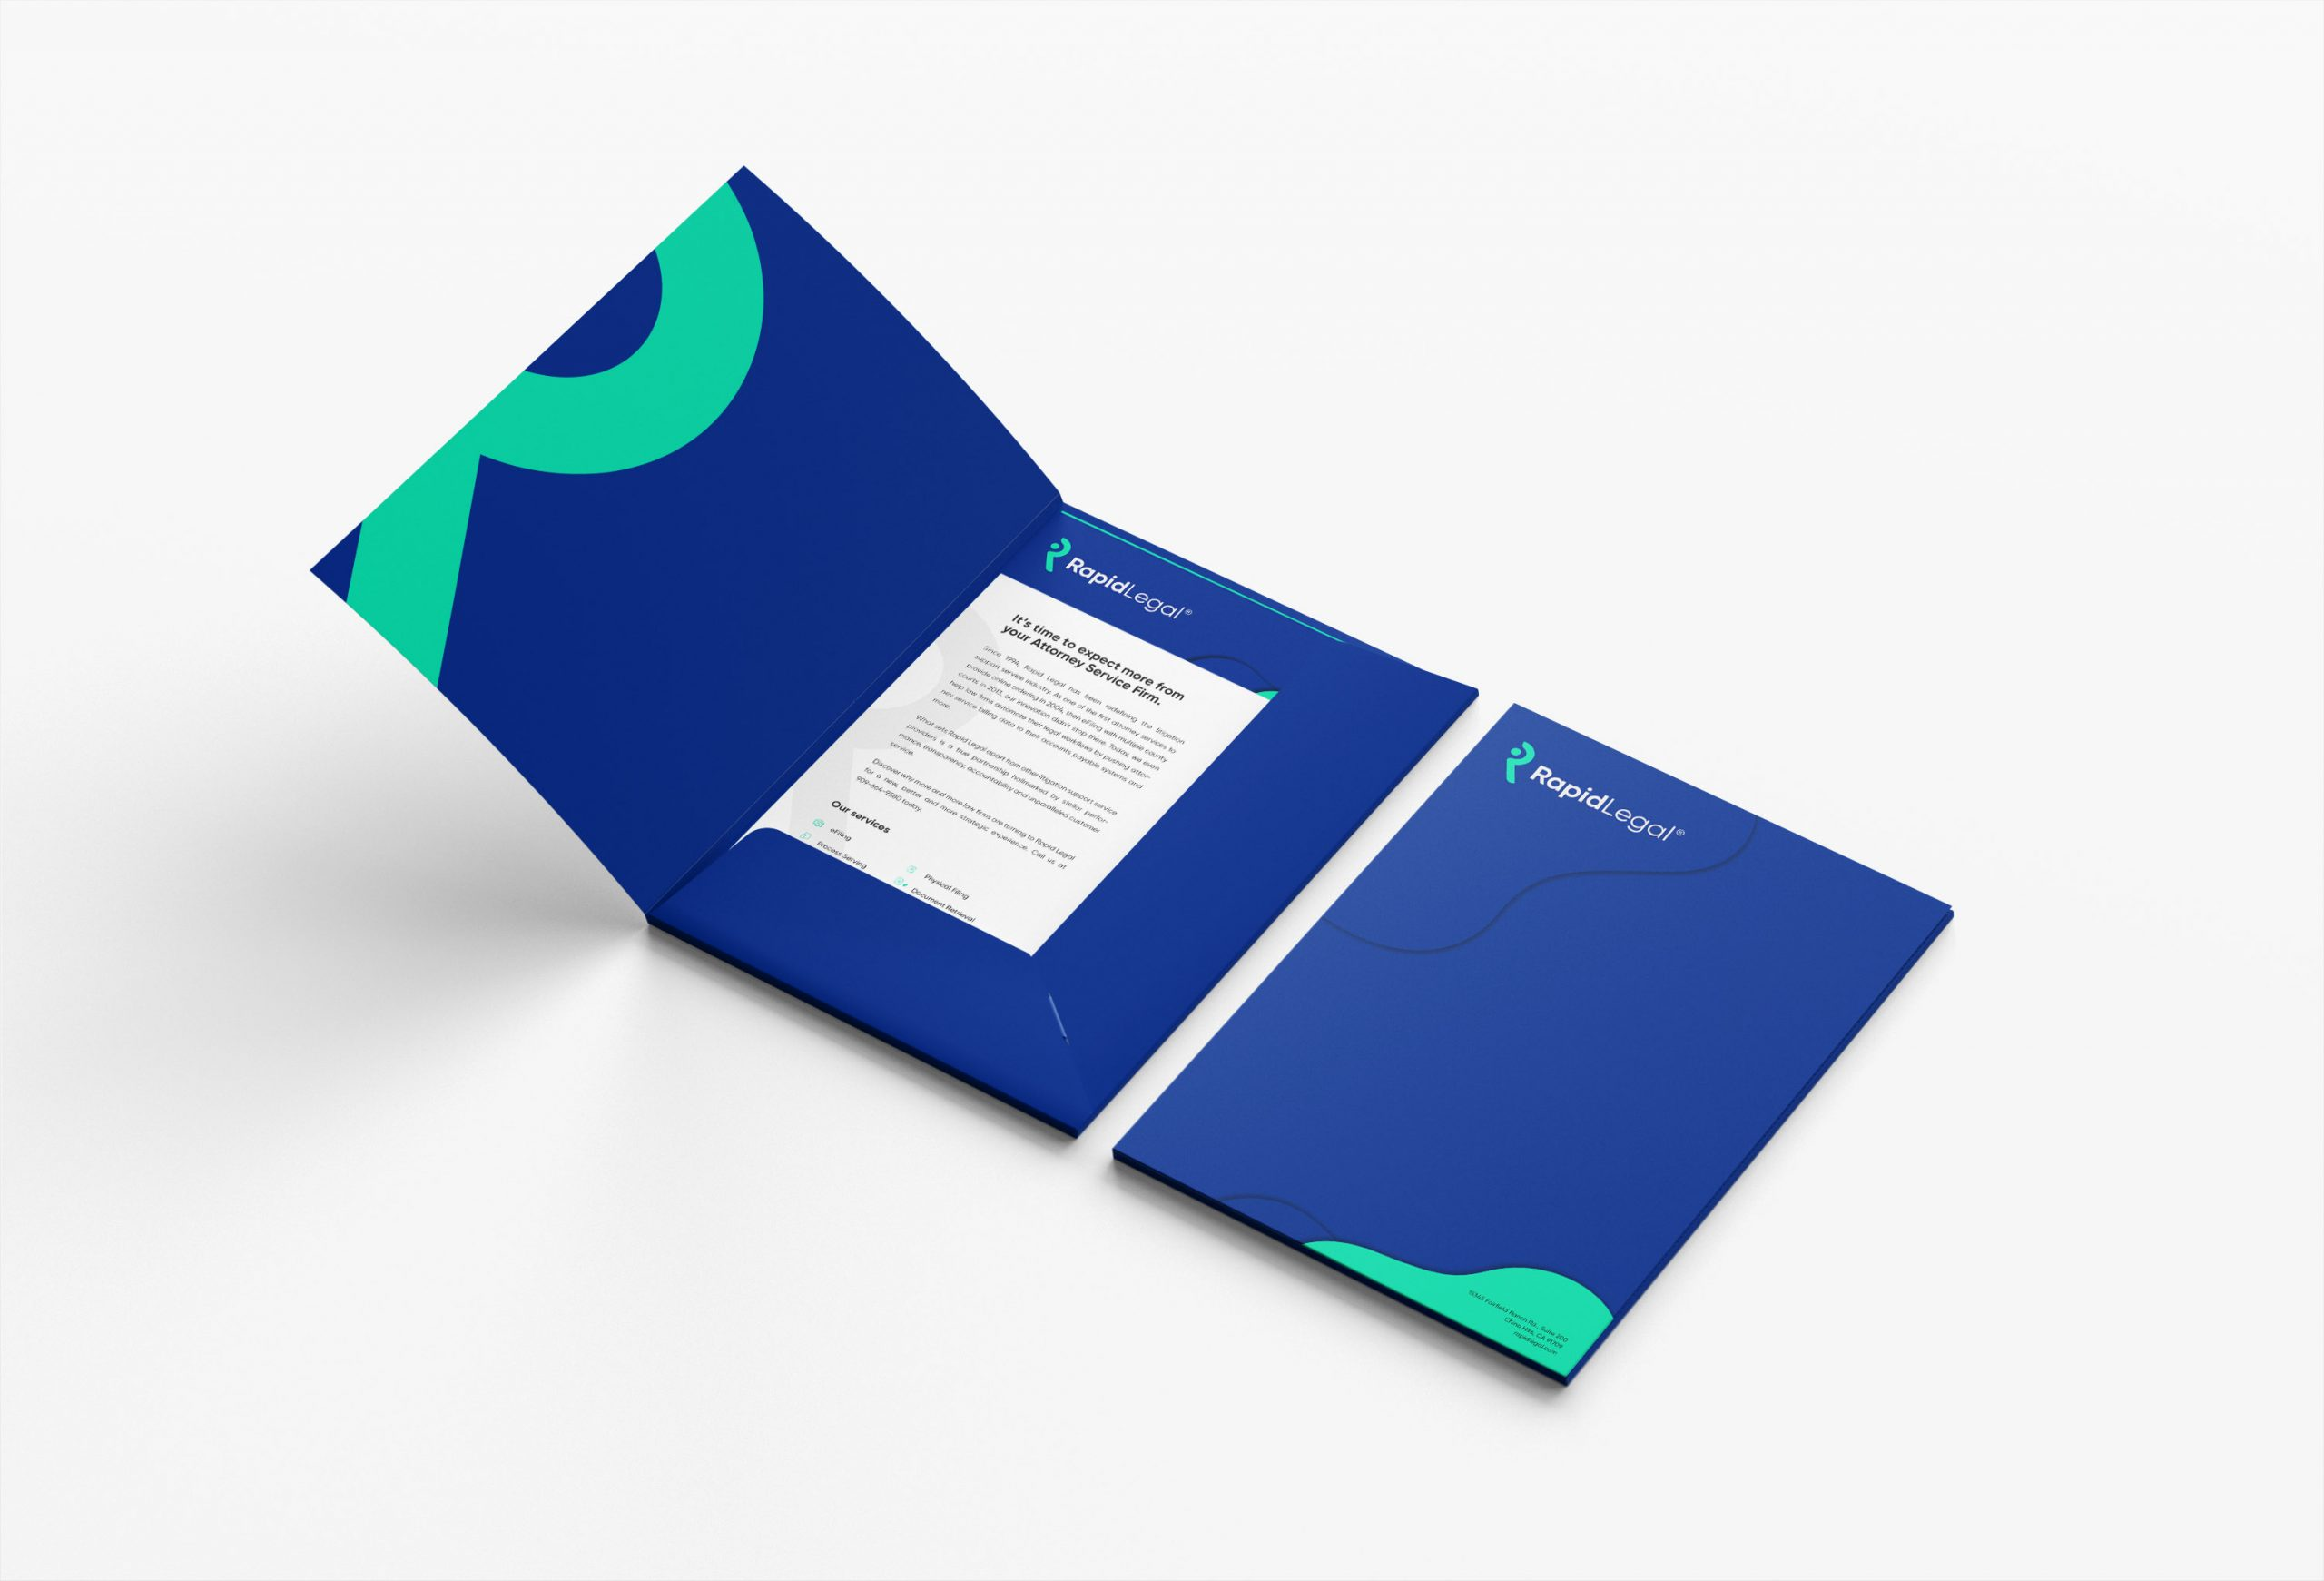 Re-branding Web Design and Web Development for Legal Services Company Rapid Legal